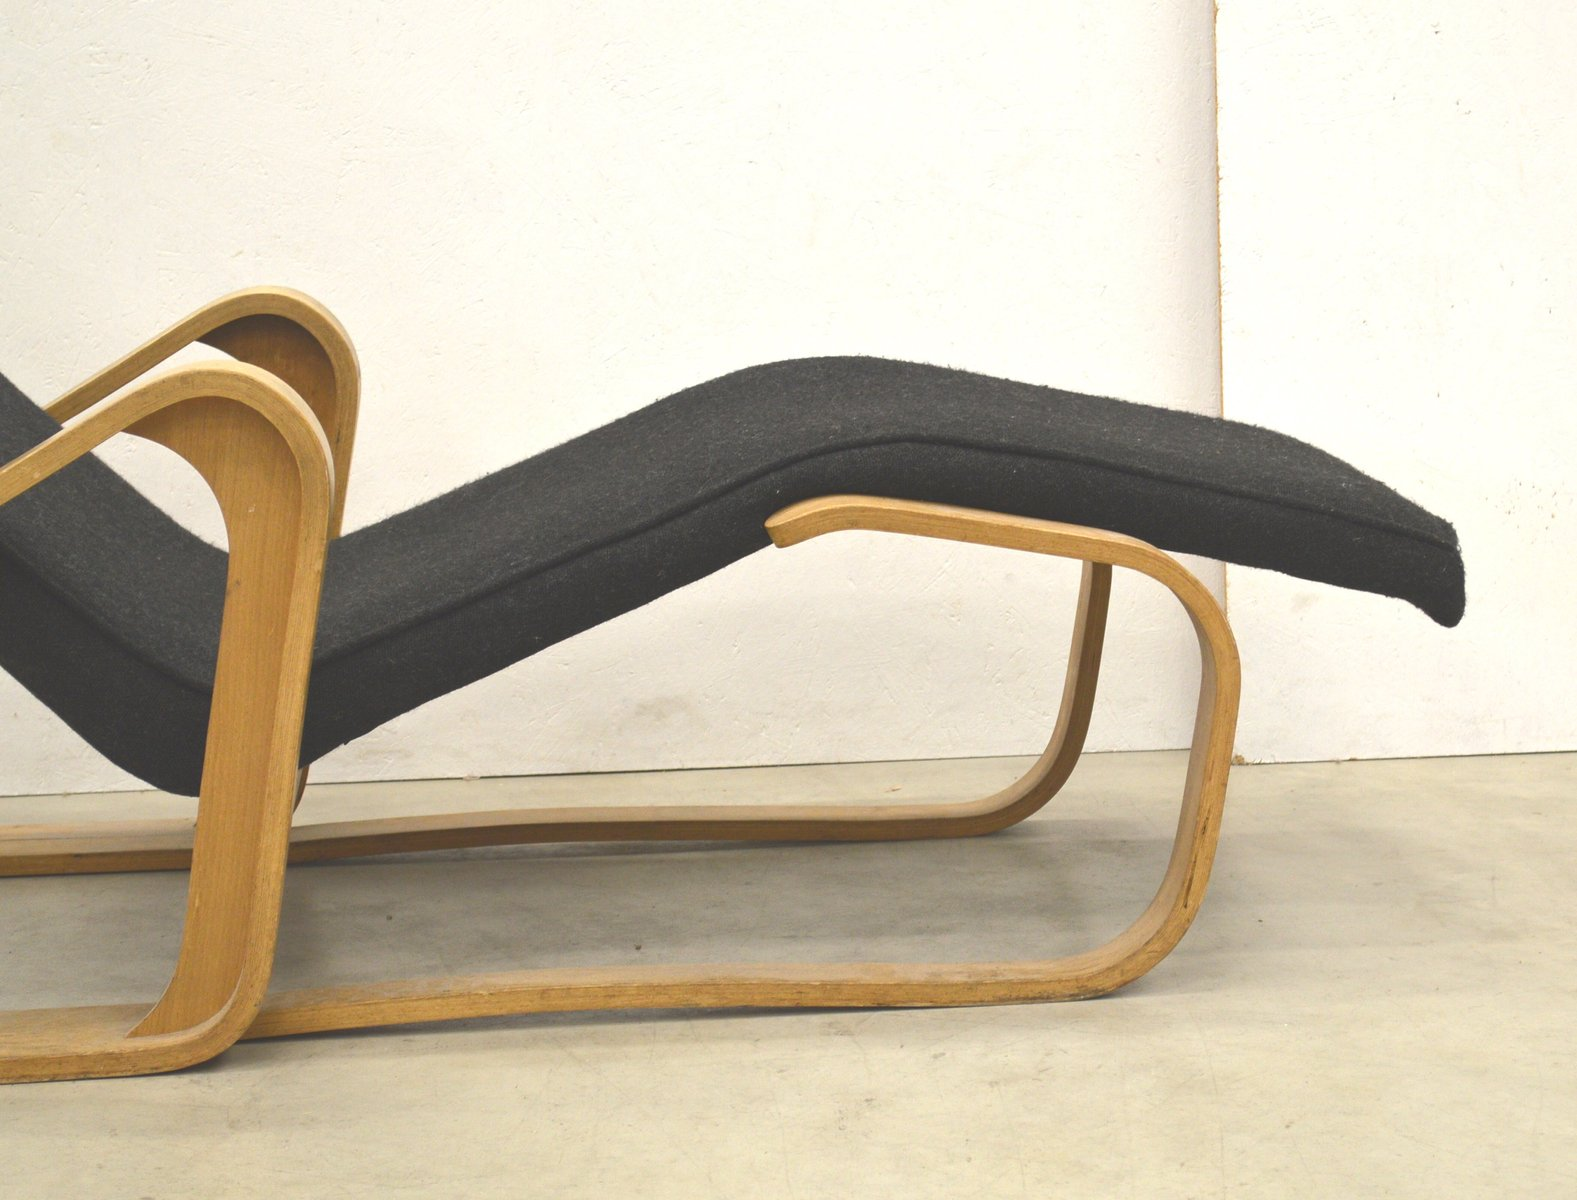 Birch chaise longue by marcel breuer for isokon 1950s for for Chaise longue for sale uk